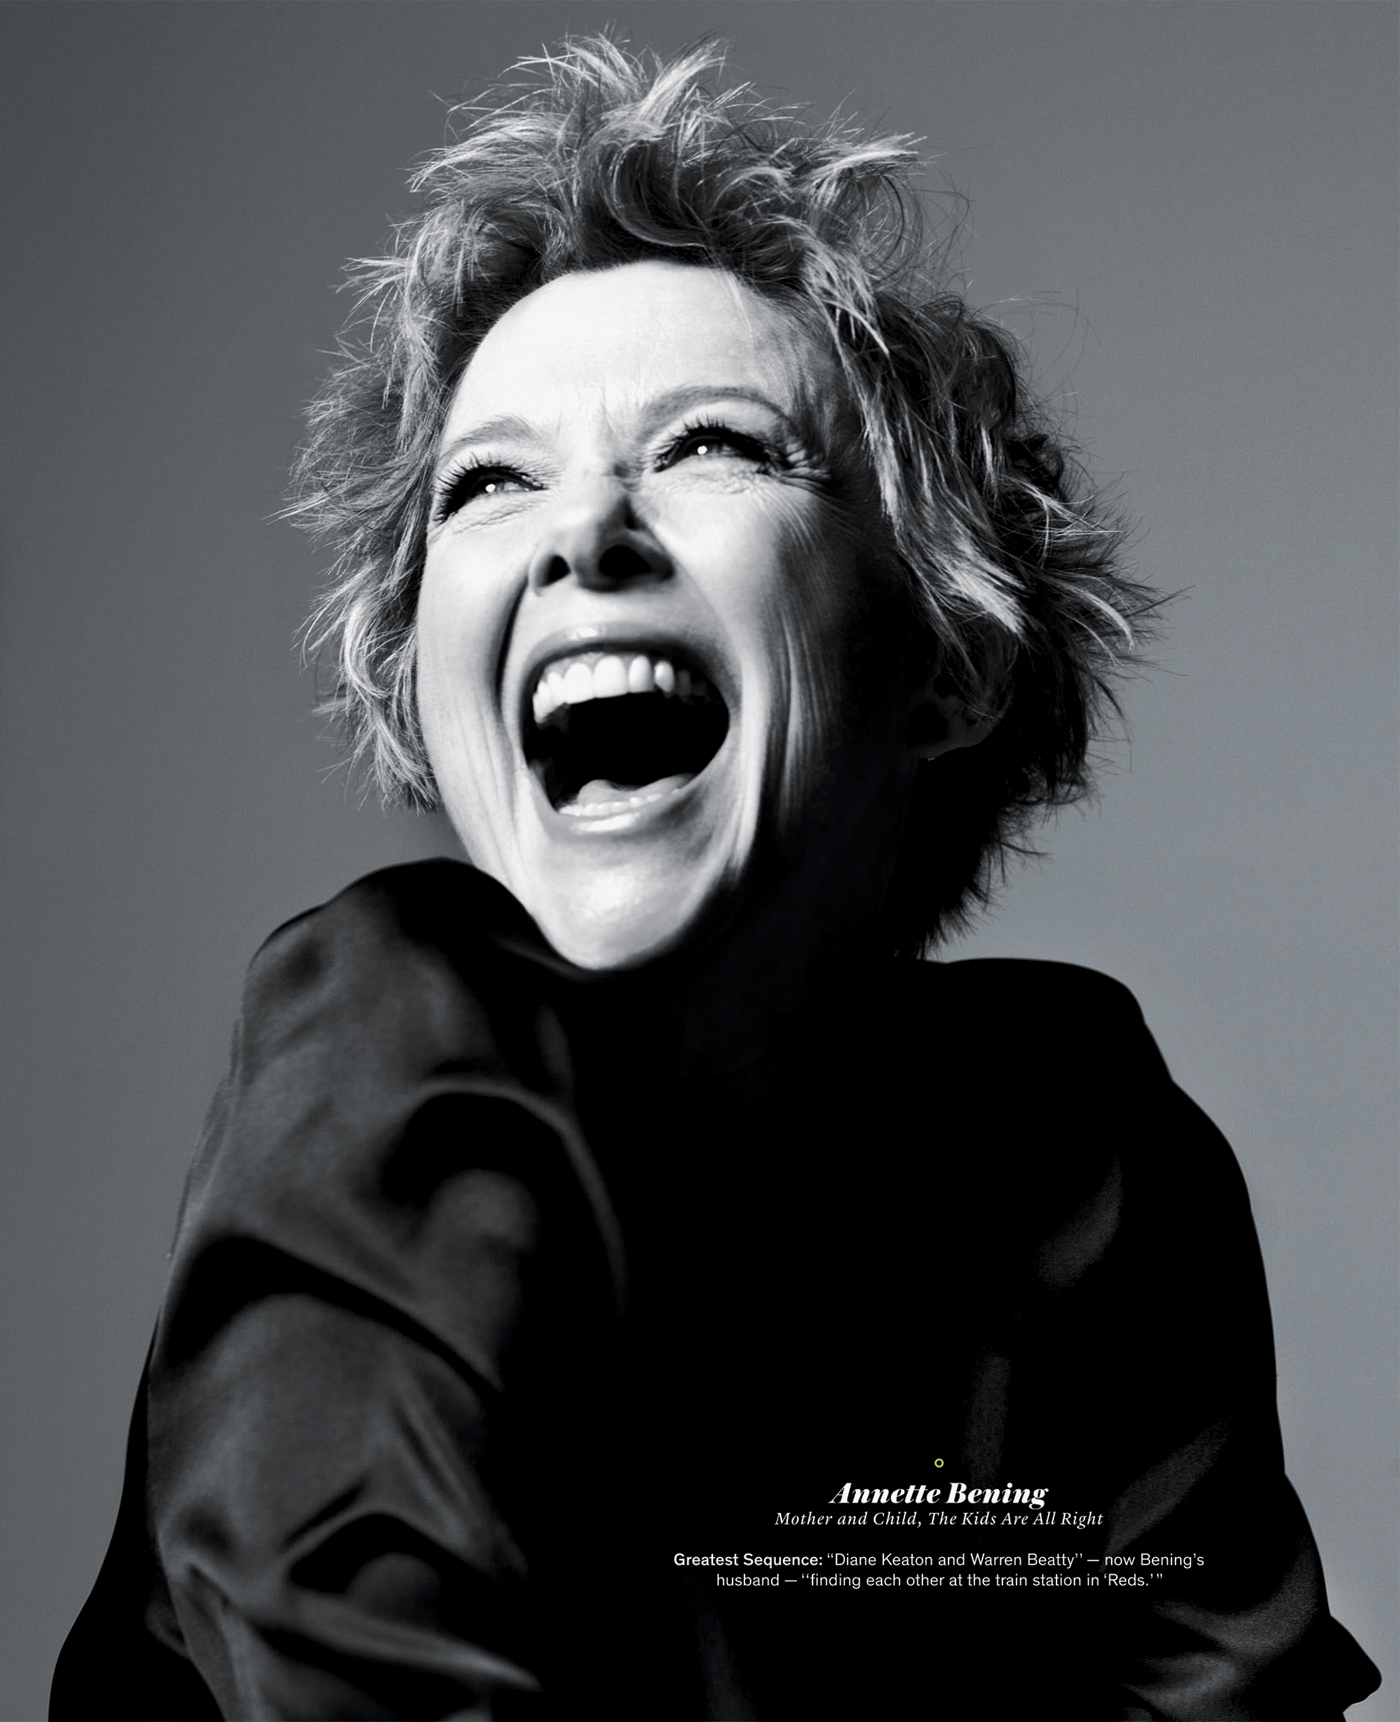 annette bening interview